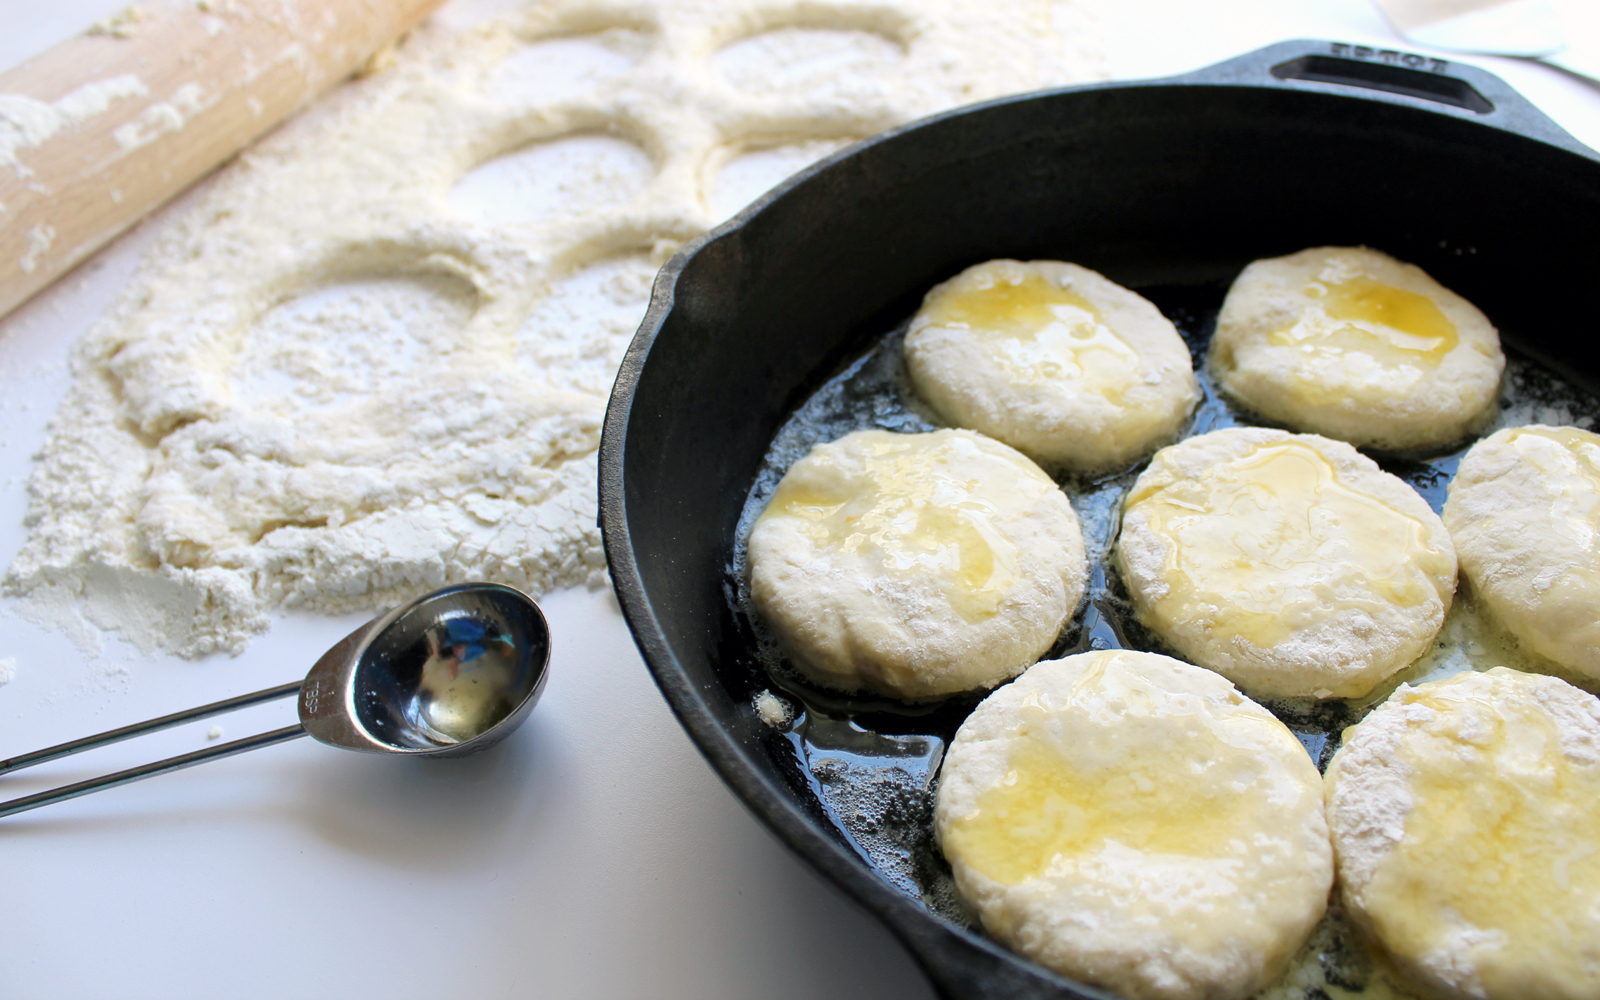 Biscuits ready to go in the oven with butter poured over the top